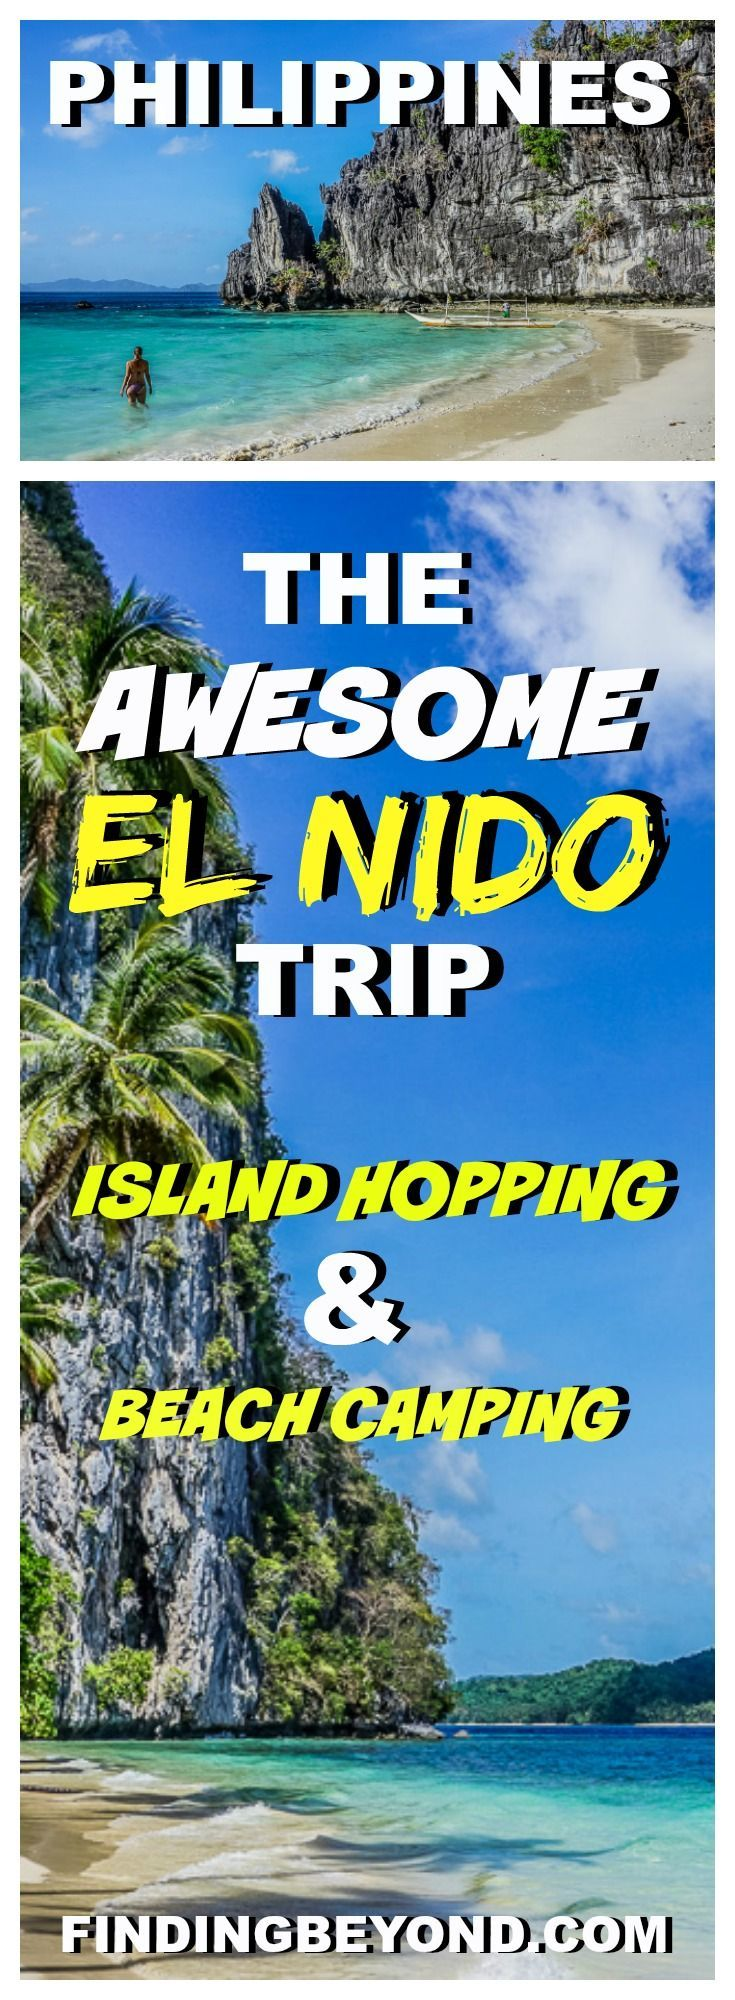 Check out our awesome El Nido (Philippines) trip itinerary. Included is information on El Nido island hopping, El Nido camping and how to get there. | Snake Island El NIDO | Big Lagoon El Nido | Small Lagoon El Nido | Beach Camping in the Philippines | Island Camping | El Nido Boat Tours | best Beaches Philippines | Philippines on a budget | Top Places To Visit In the Philippines | Best attractions in El Nido #vacationideasonabudgetcouple